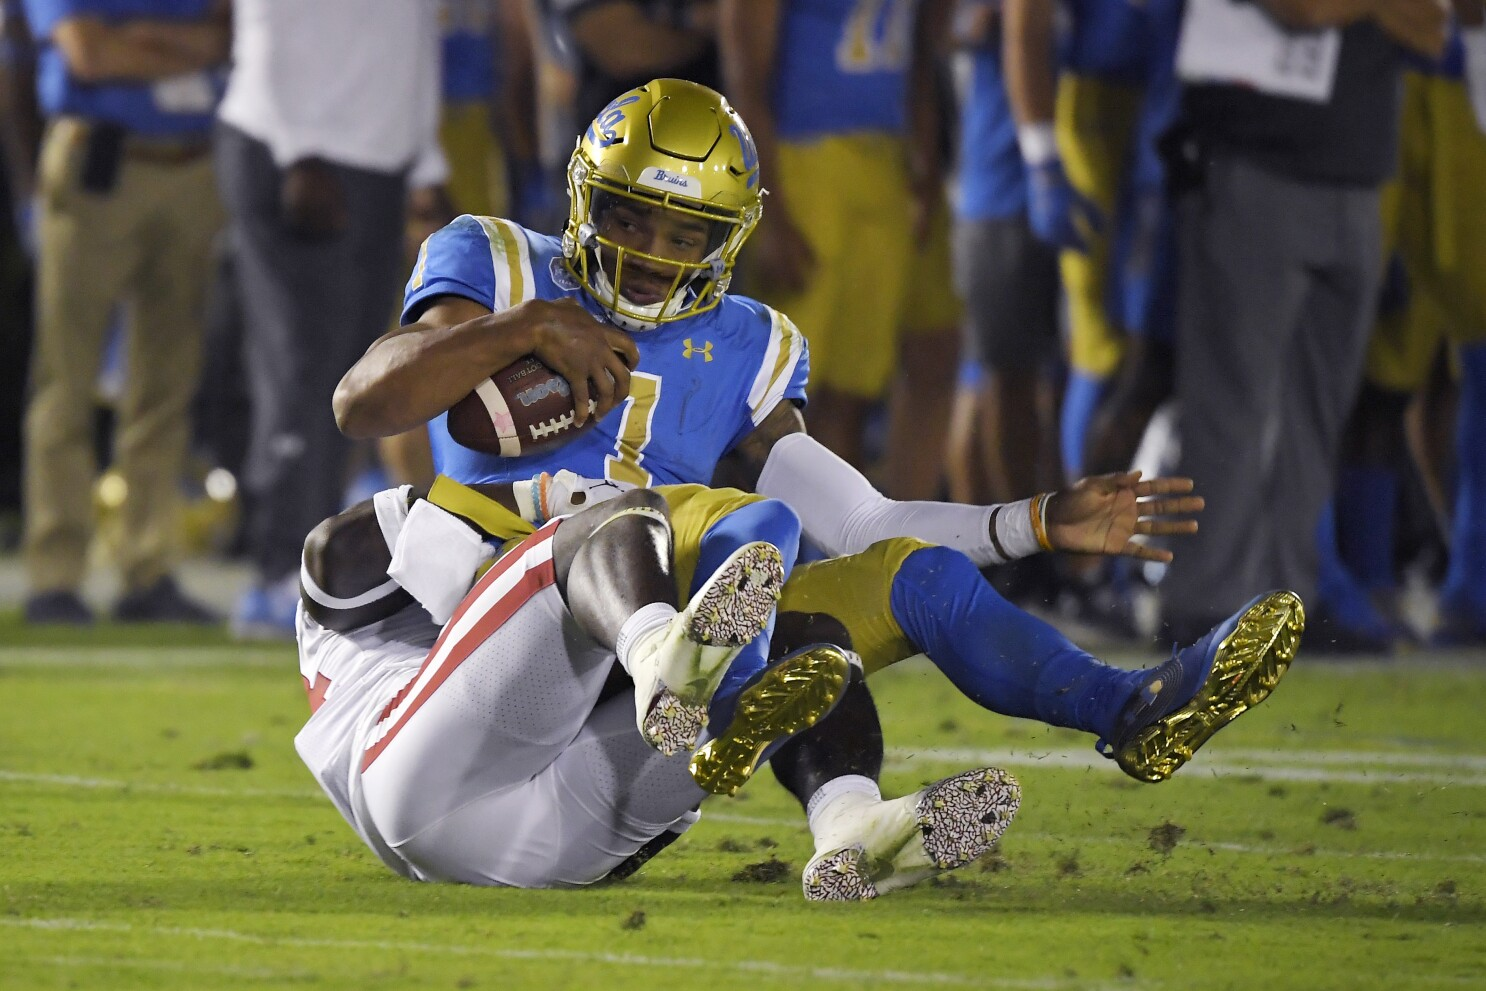 newest collection 46a62 bd6e0 UCLA coach Chip Kelly sticks with Dorian Thompson-Robinson ...